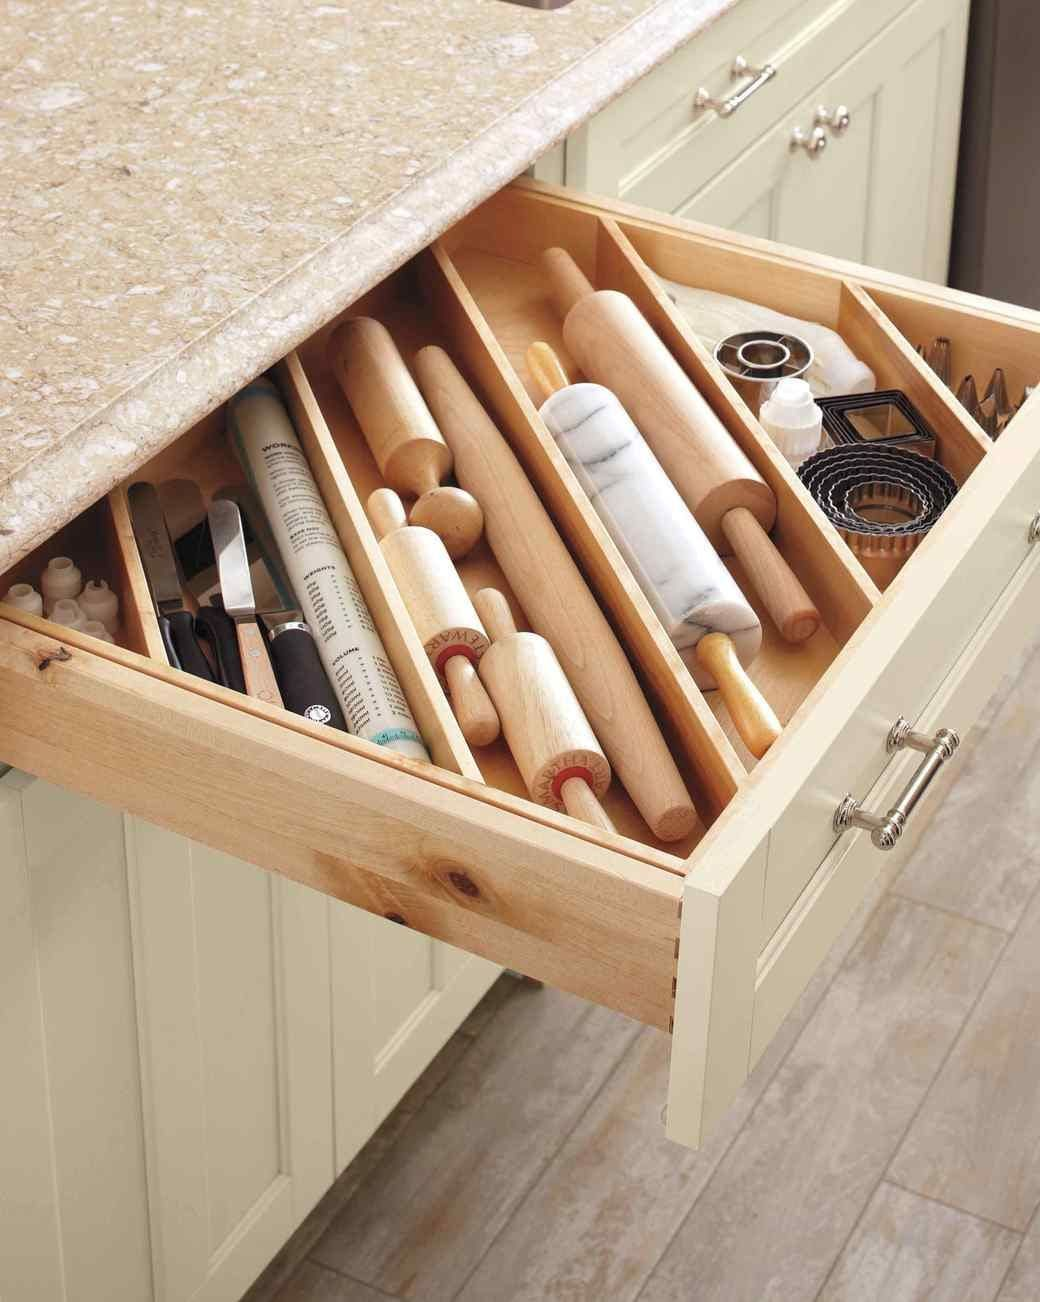 Kitchen Cabinet Drawer Organizers Diy Ideas For Impeccably Organized Drawers Drawer